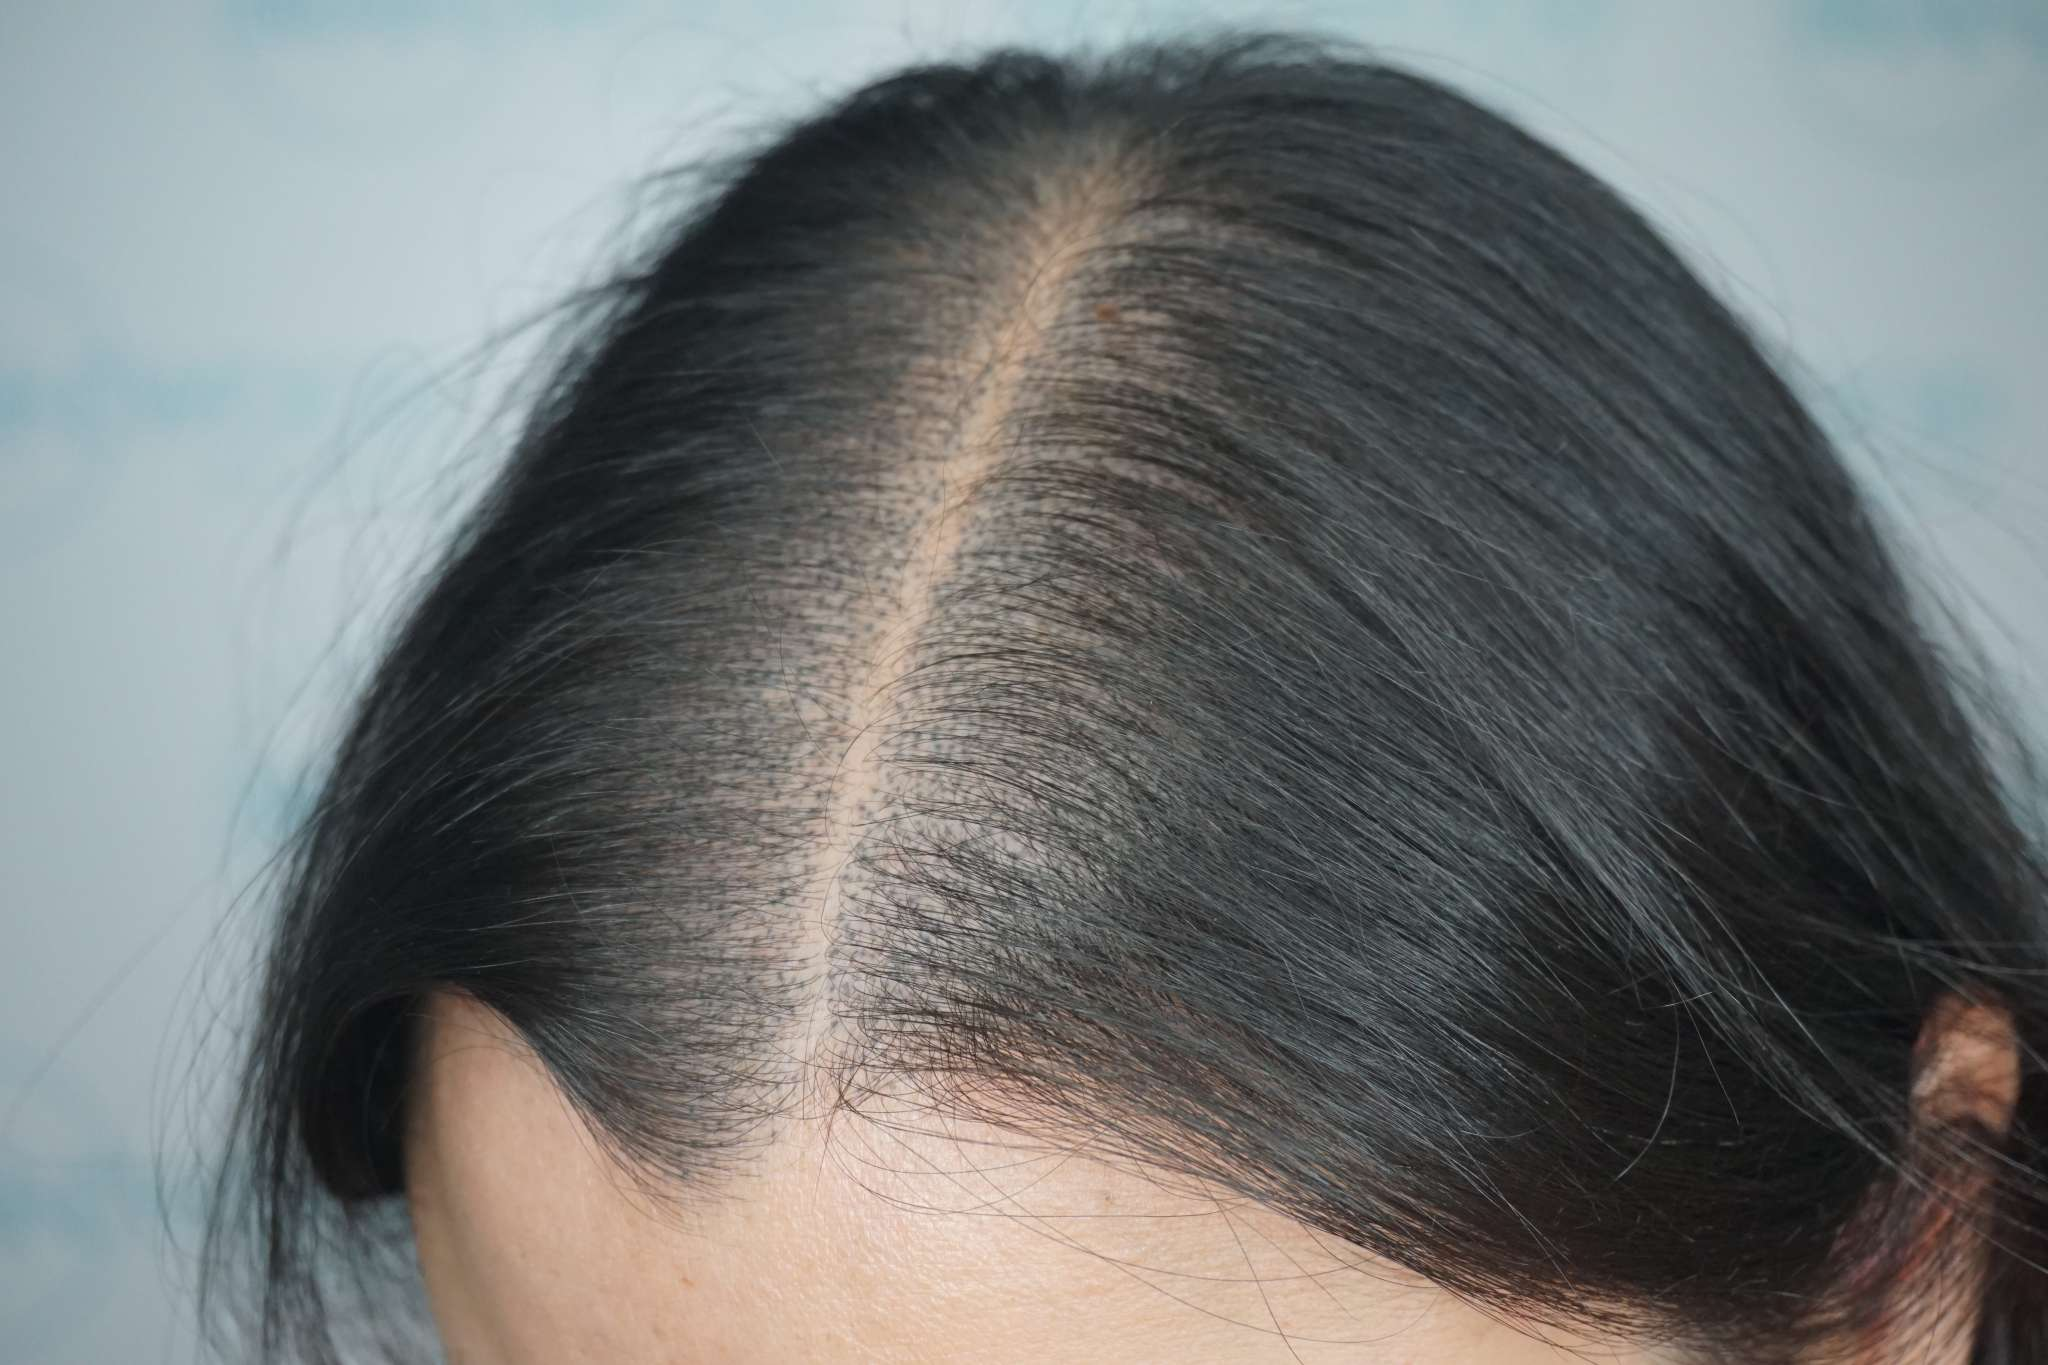 Hair tattoo for women's hair loss